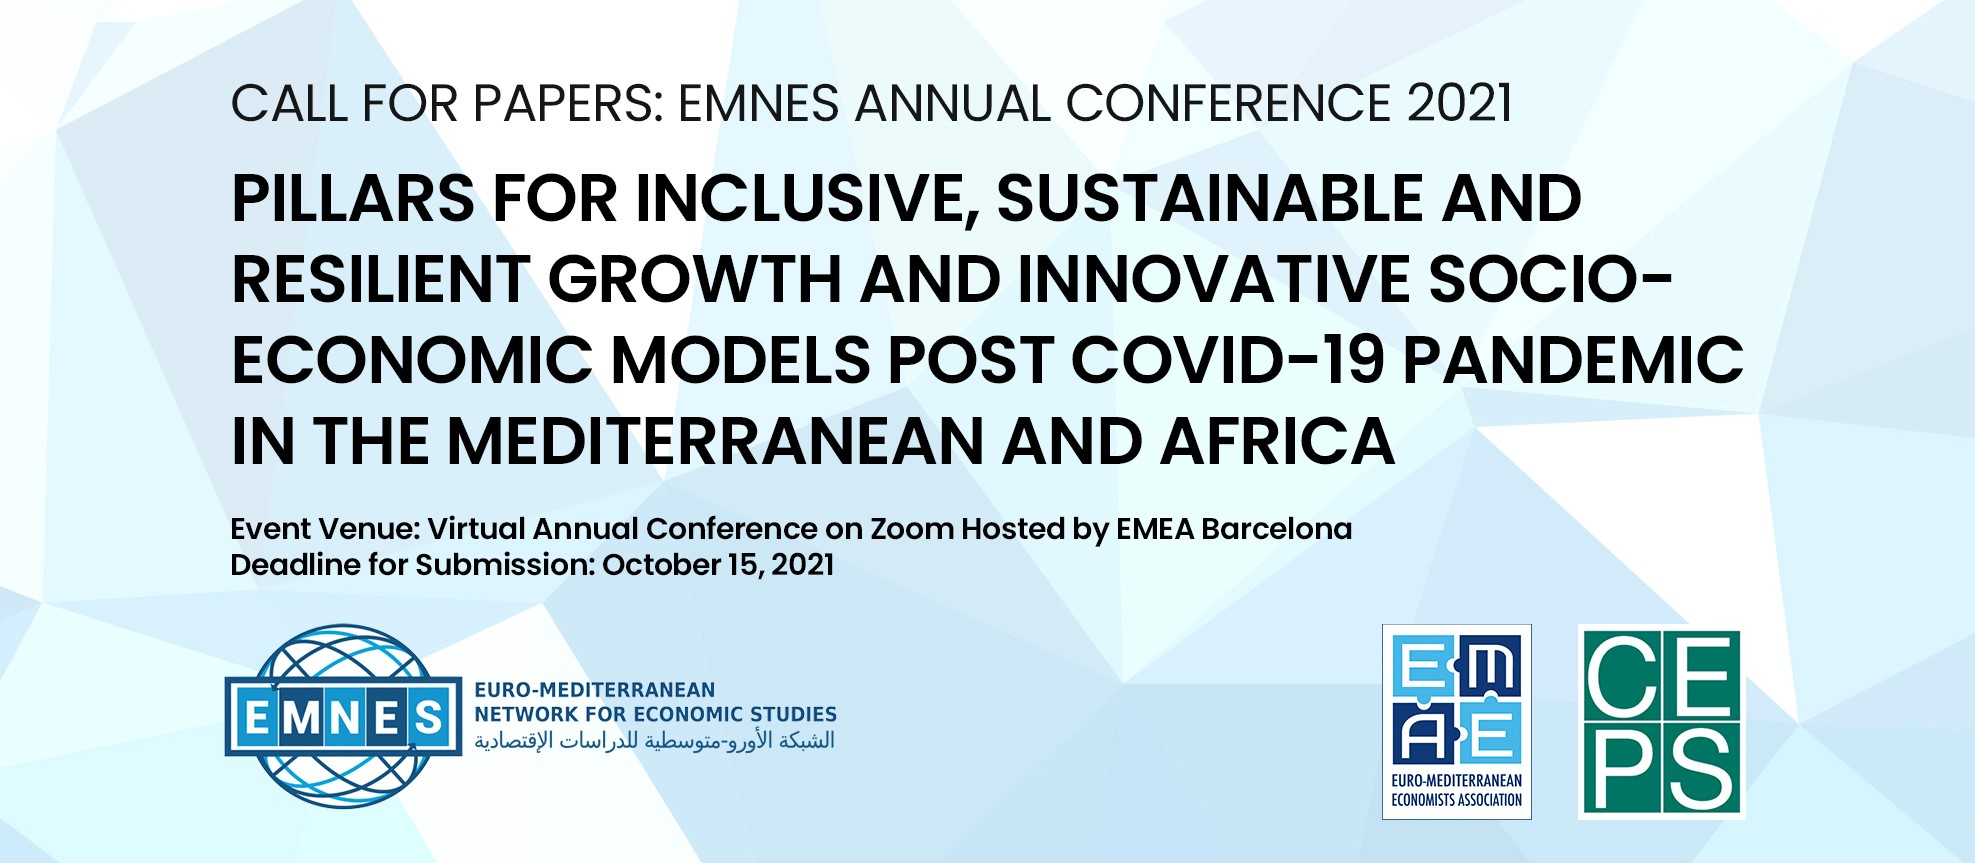 Call for papers: EMNES Annual Conference 2021 Pillars for Inclusive, Sustainable and Resilient Growth and Innovative Socio-Economic Models Post COVID-19 Pandemic in the Mediterranean and Africa